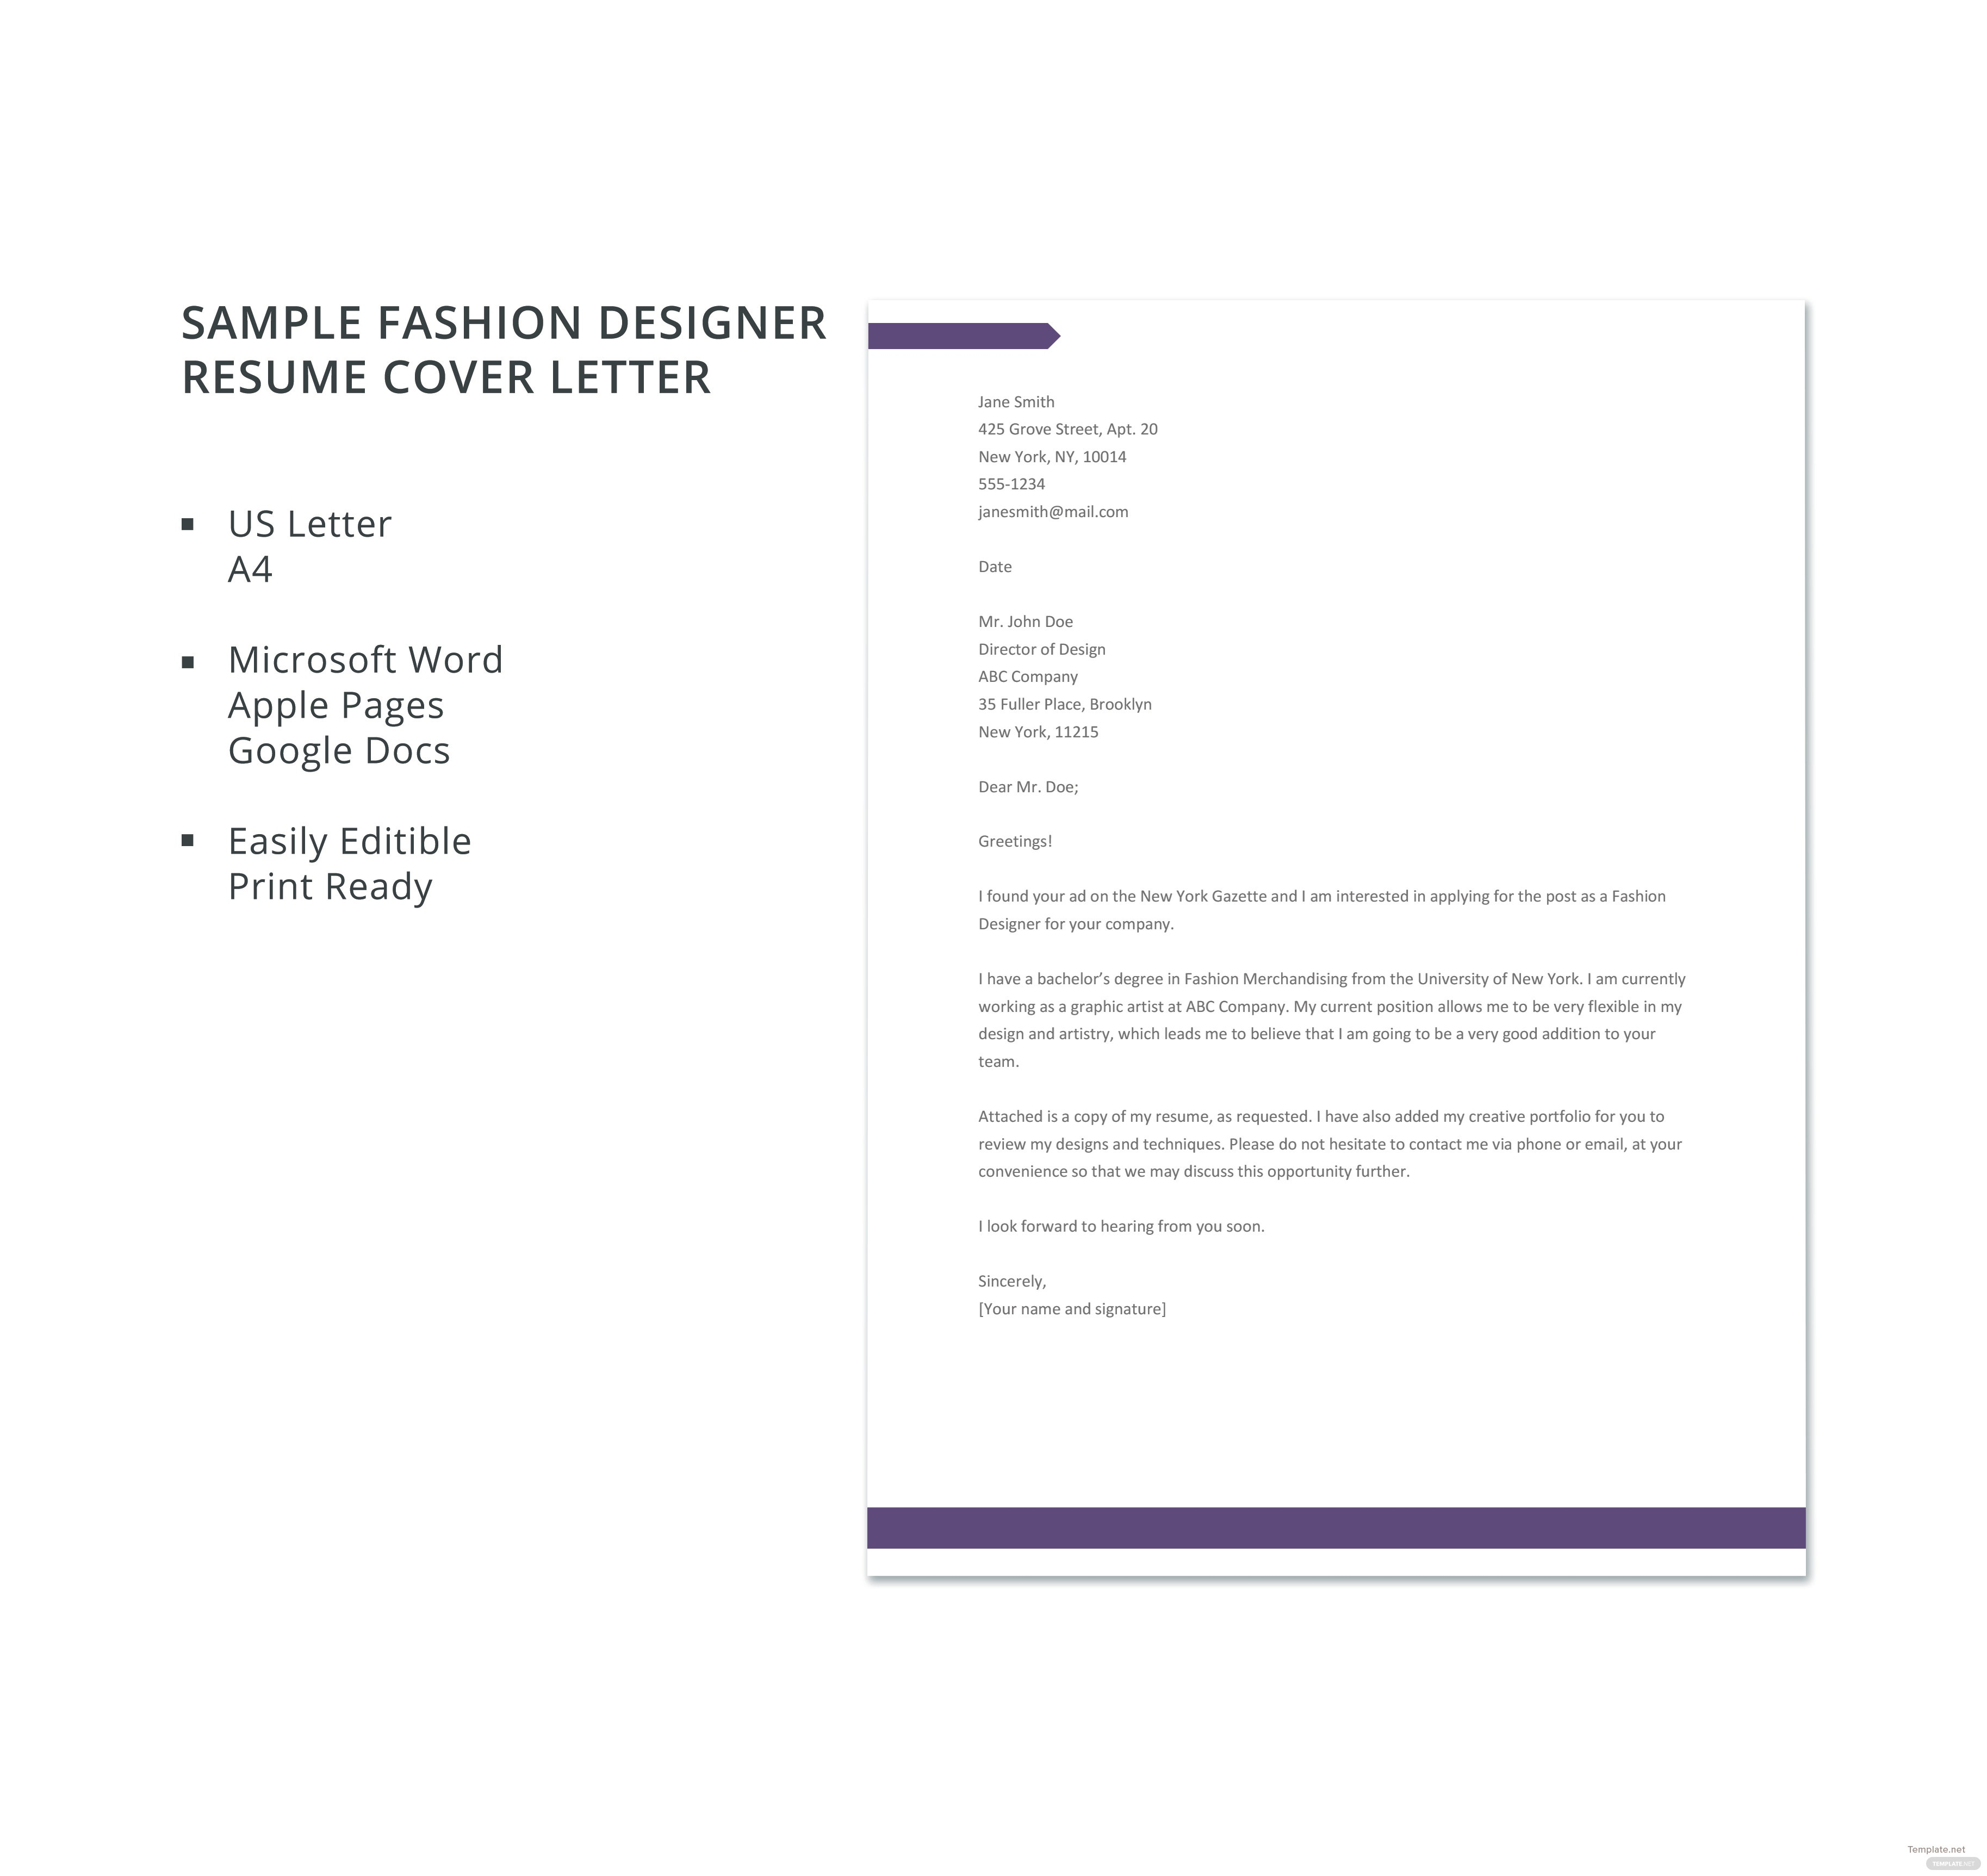 Cover letter template for your first job Cover letter Cover letter for fashion design